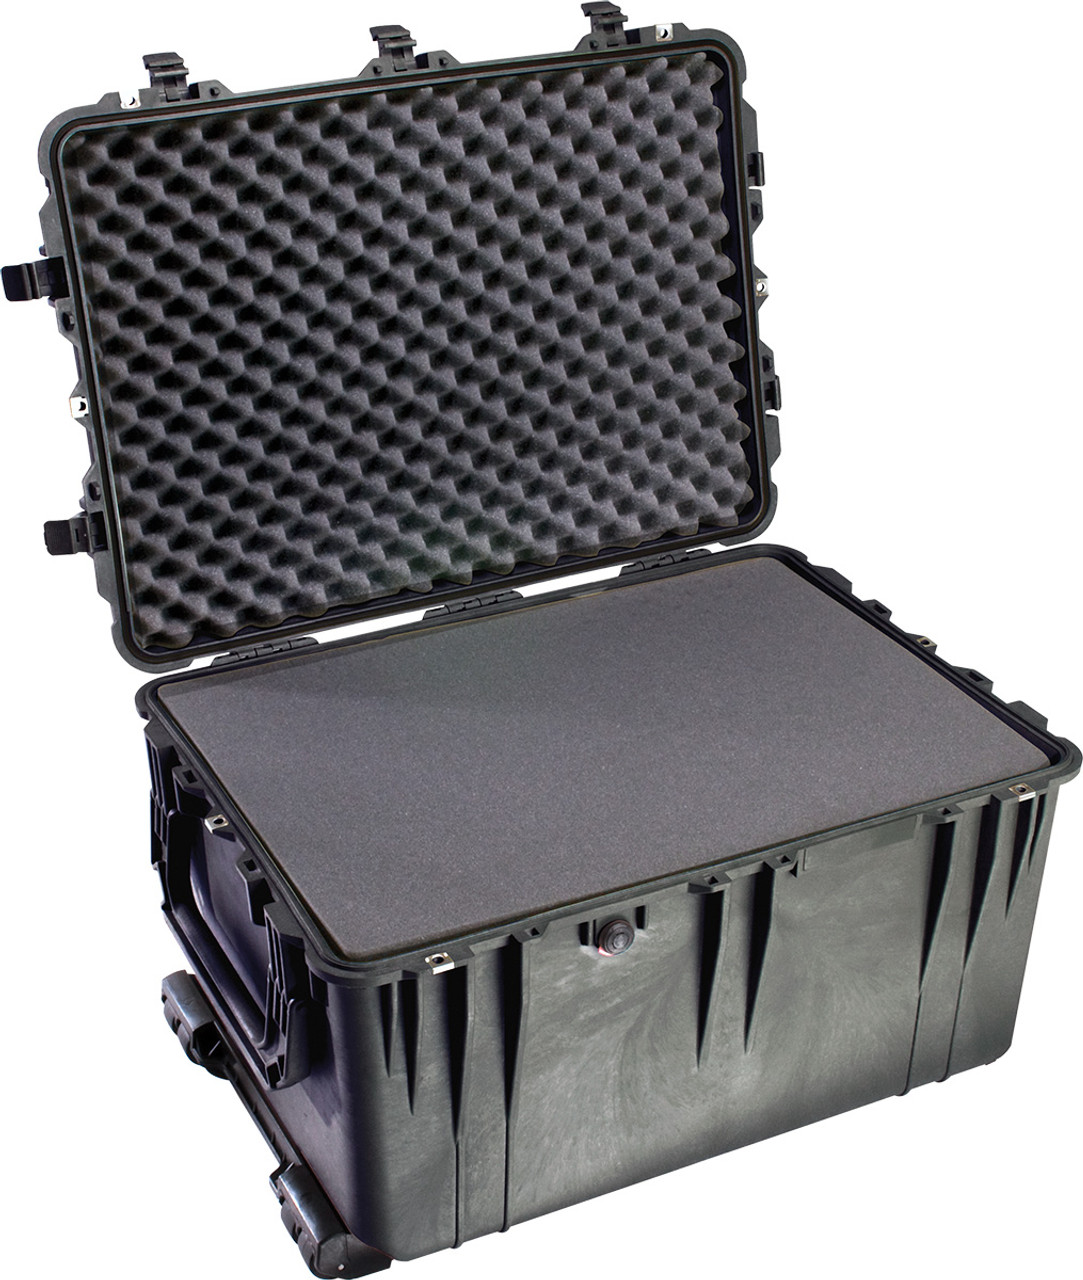 Pelican 1660 Protector - Large Transport Case with Wheels and Retractable extension handle, with Optional Foam Insert or Optional Padded Divider, Available in Black, OD Green or Desert Tan, 32x24x20, 44 lbs (w-out foam, 37 lbs) (WD, 45 lbs)